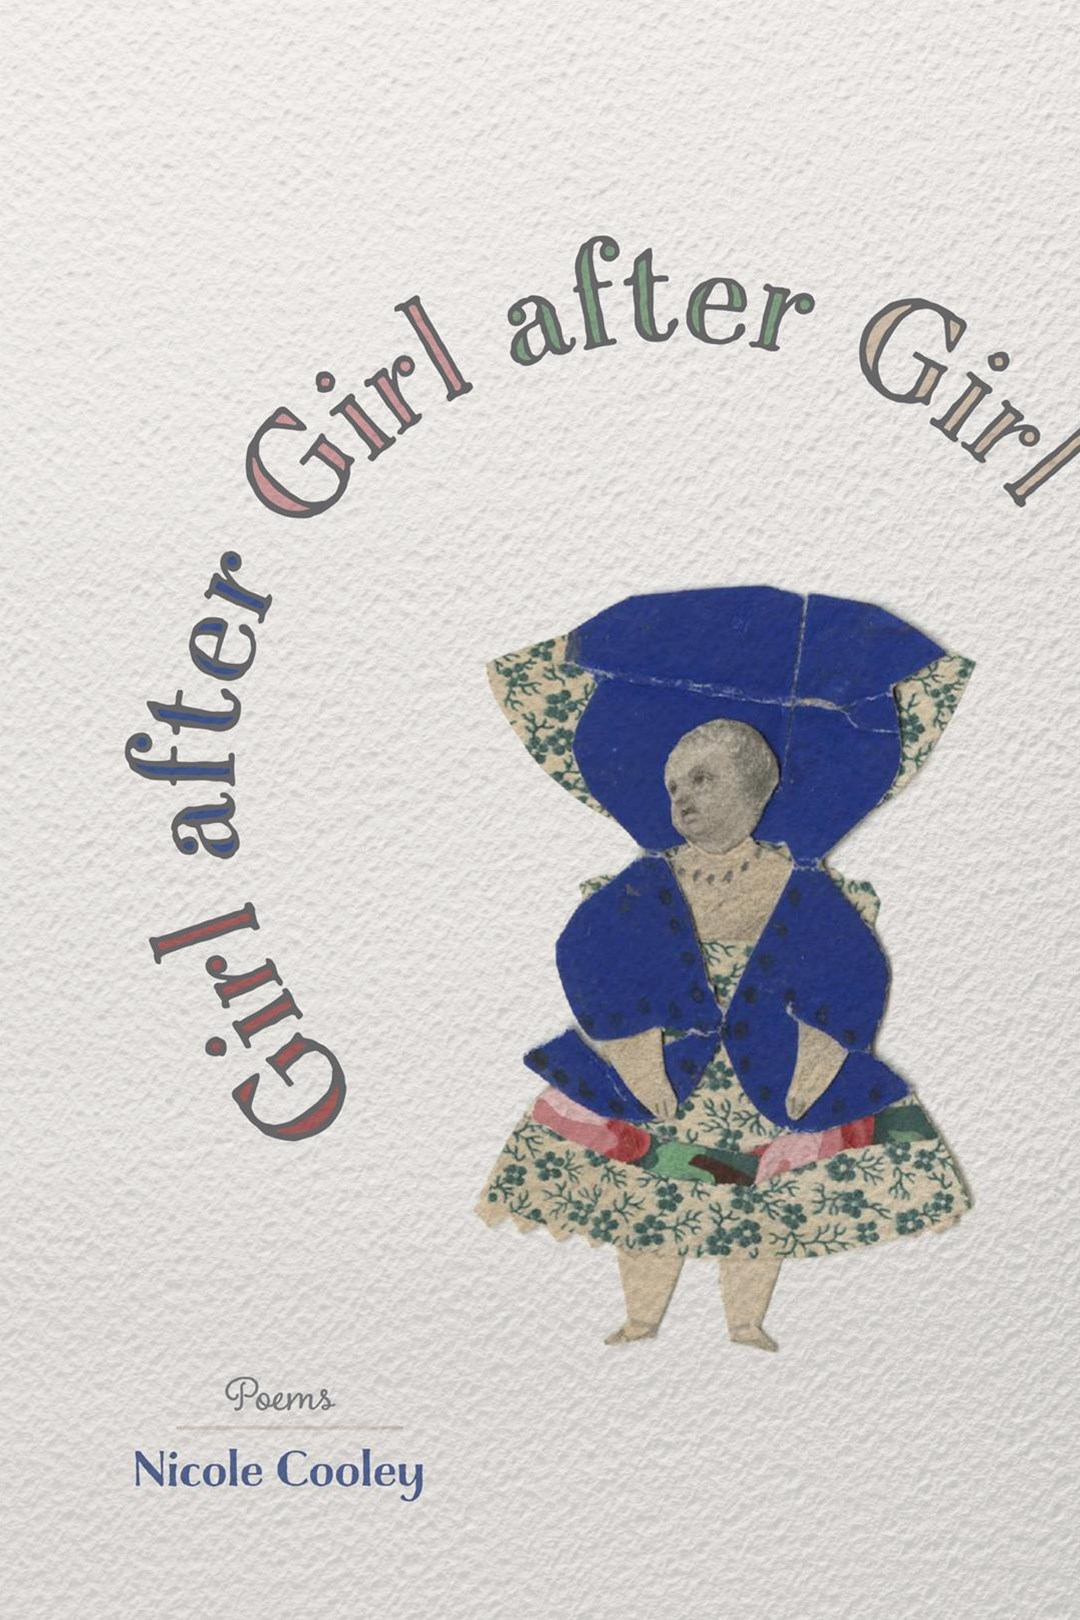 Girl after Girl after Girl